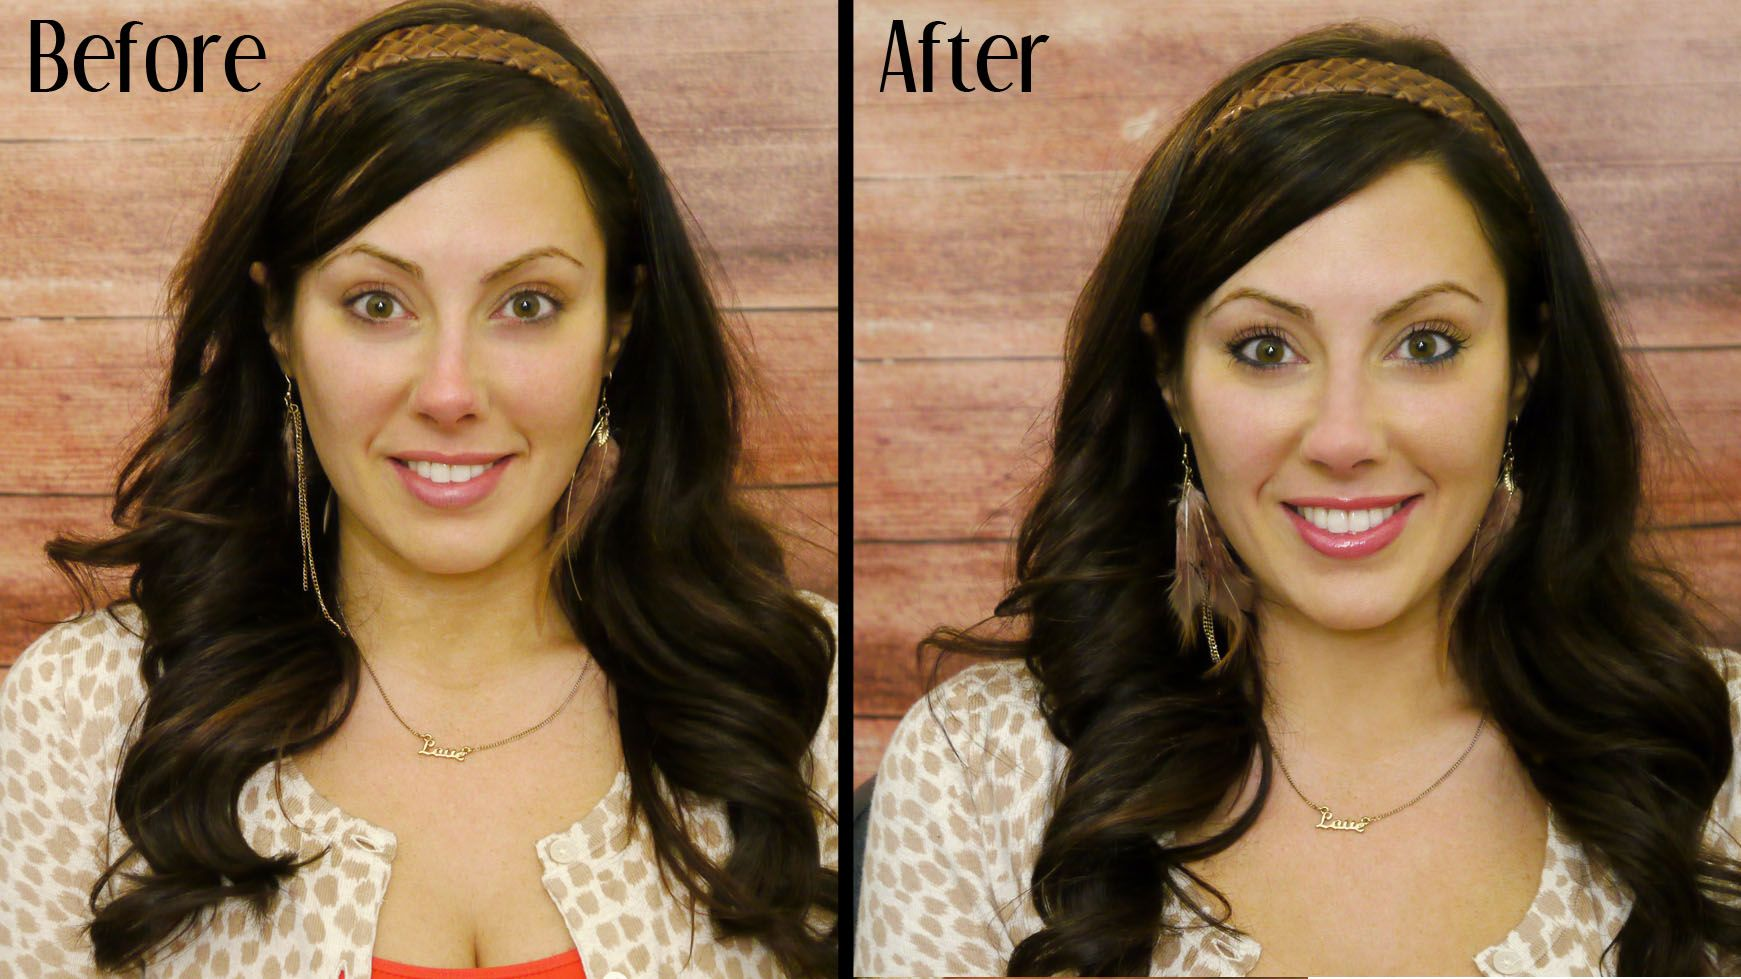 But I am pretty realistic and realize I will be a new mom soon too.  2 MINUTE MAKEUP video...must have :)